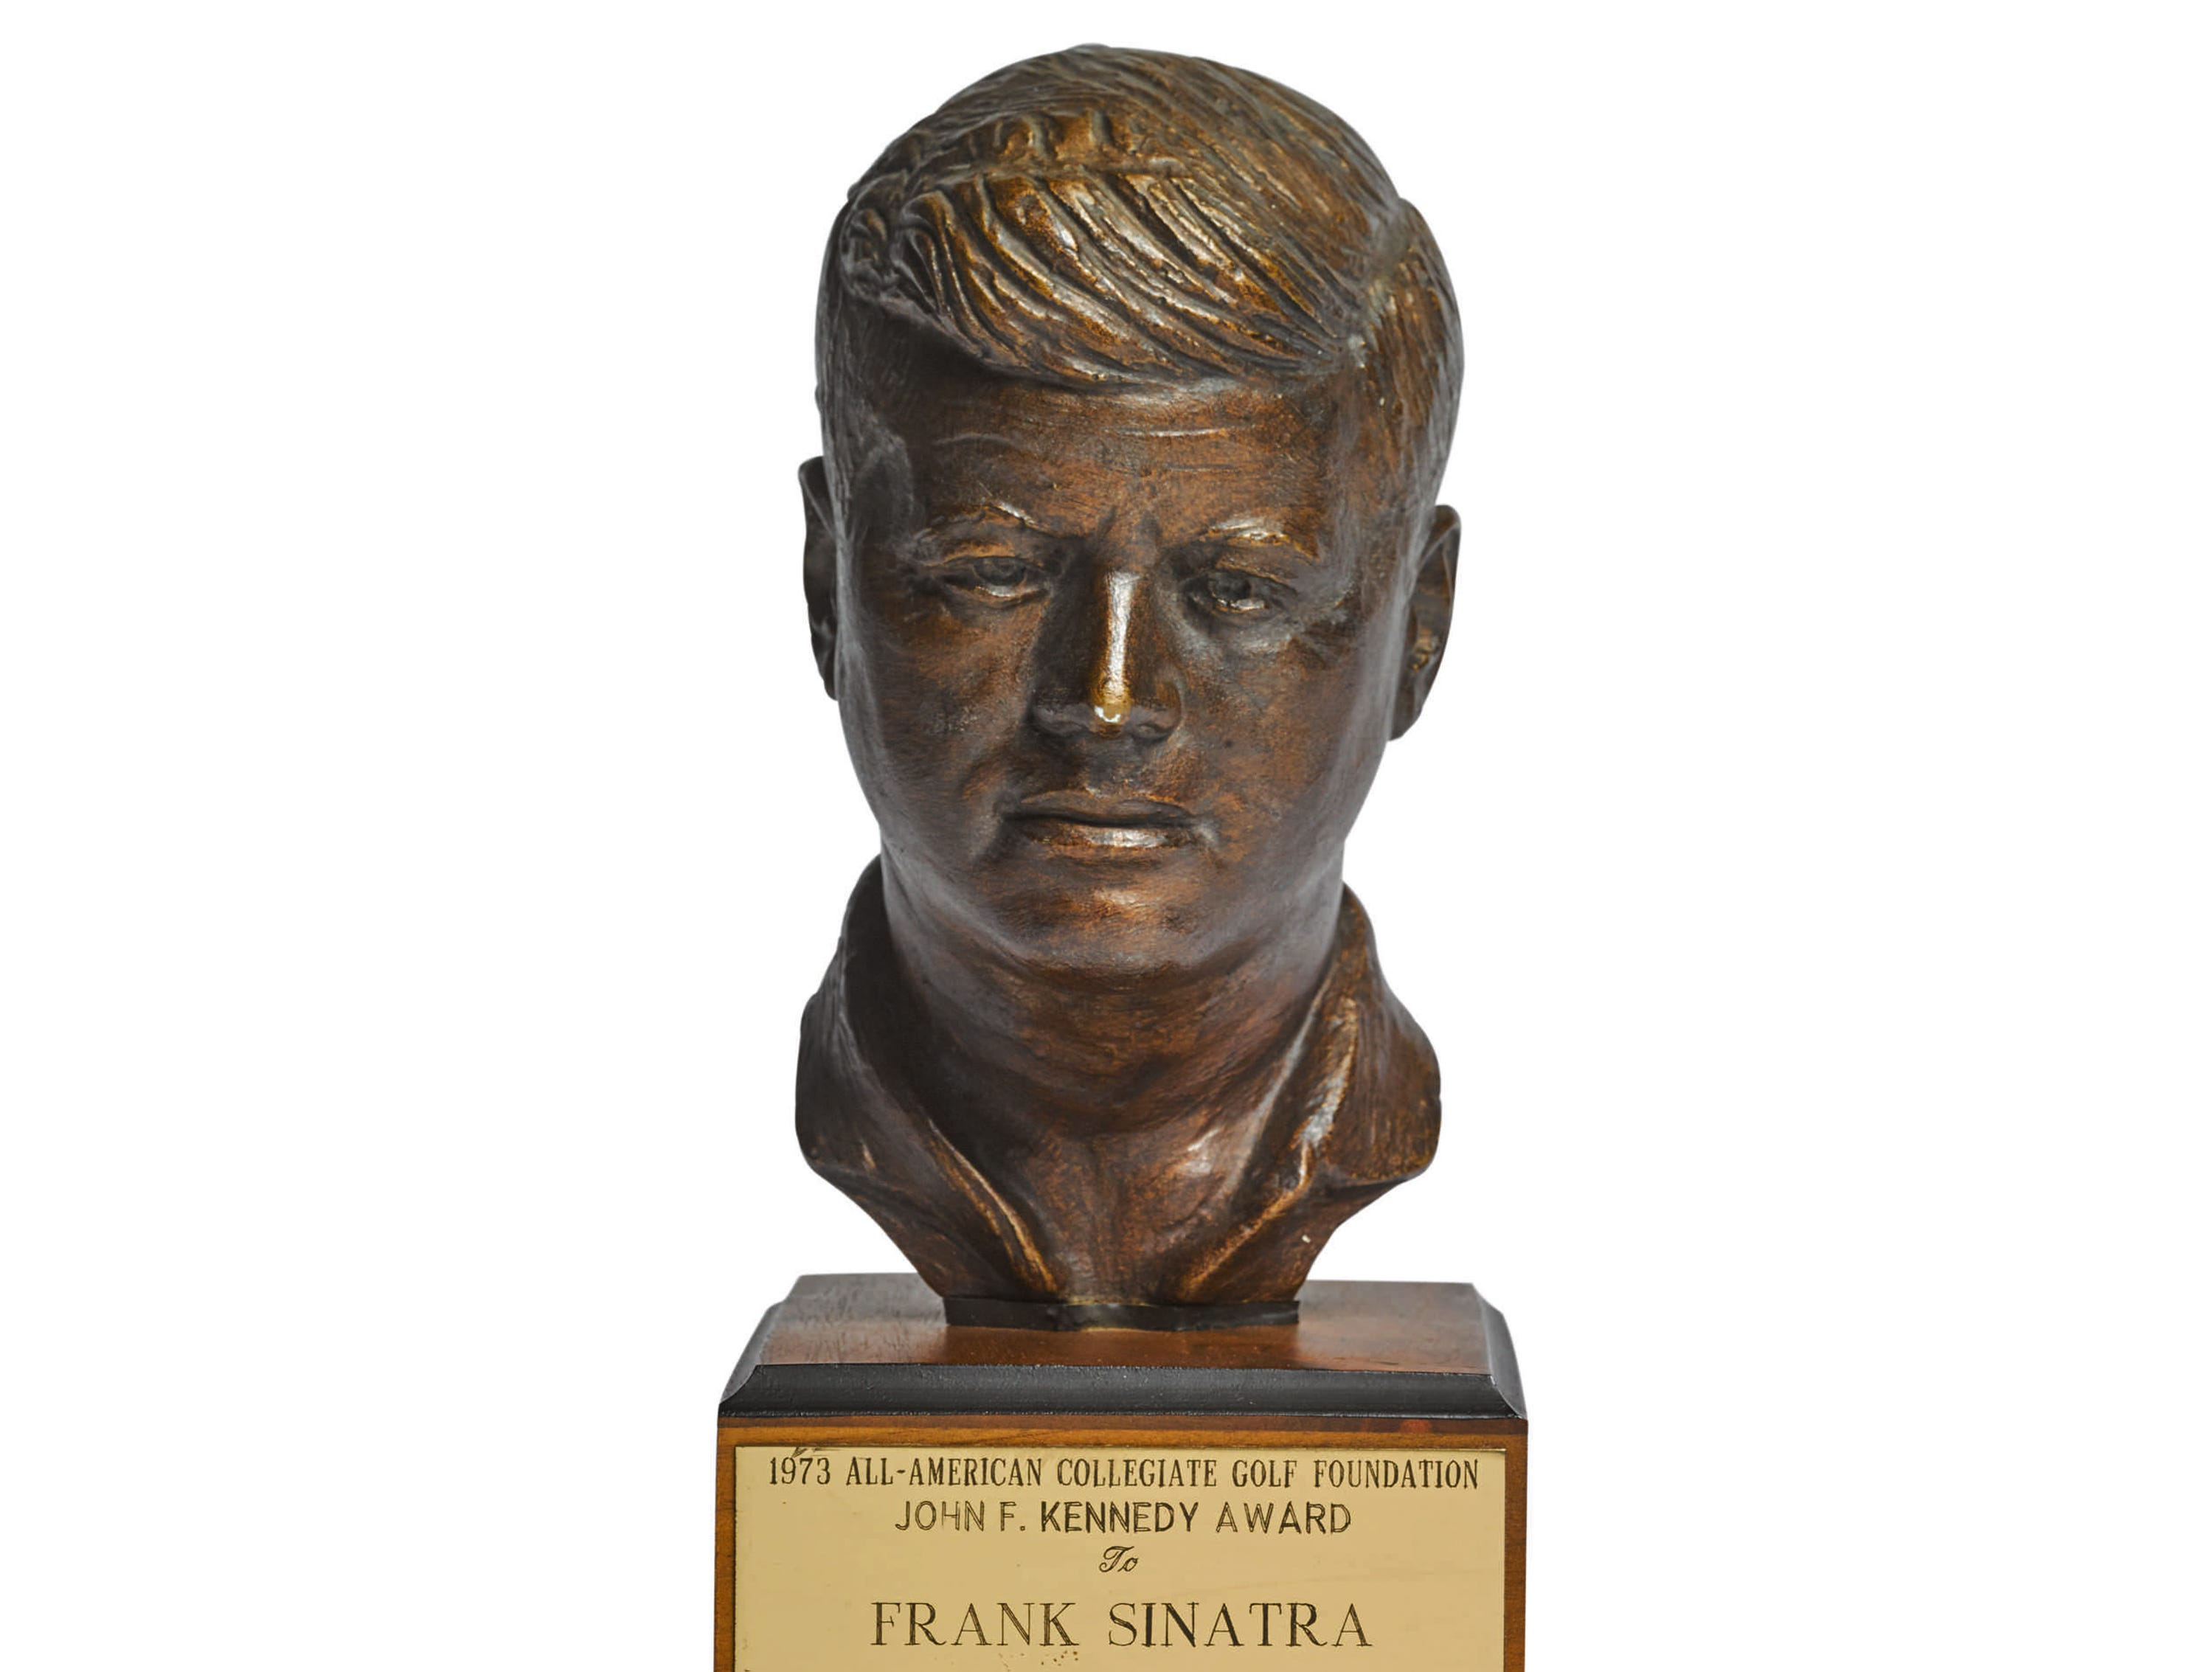 Frank Sinatra's All American Collegiate Golf Foundation John F Kennedy Award, 1973